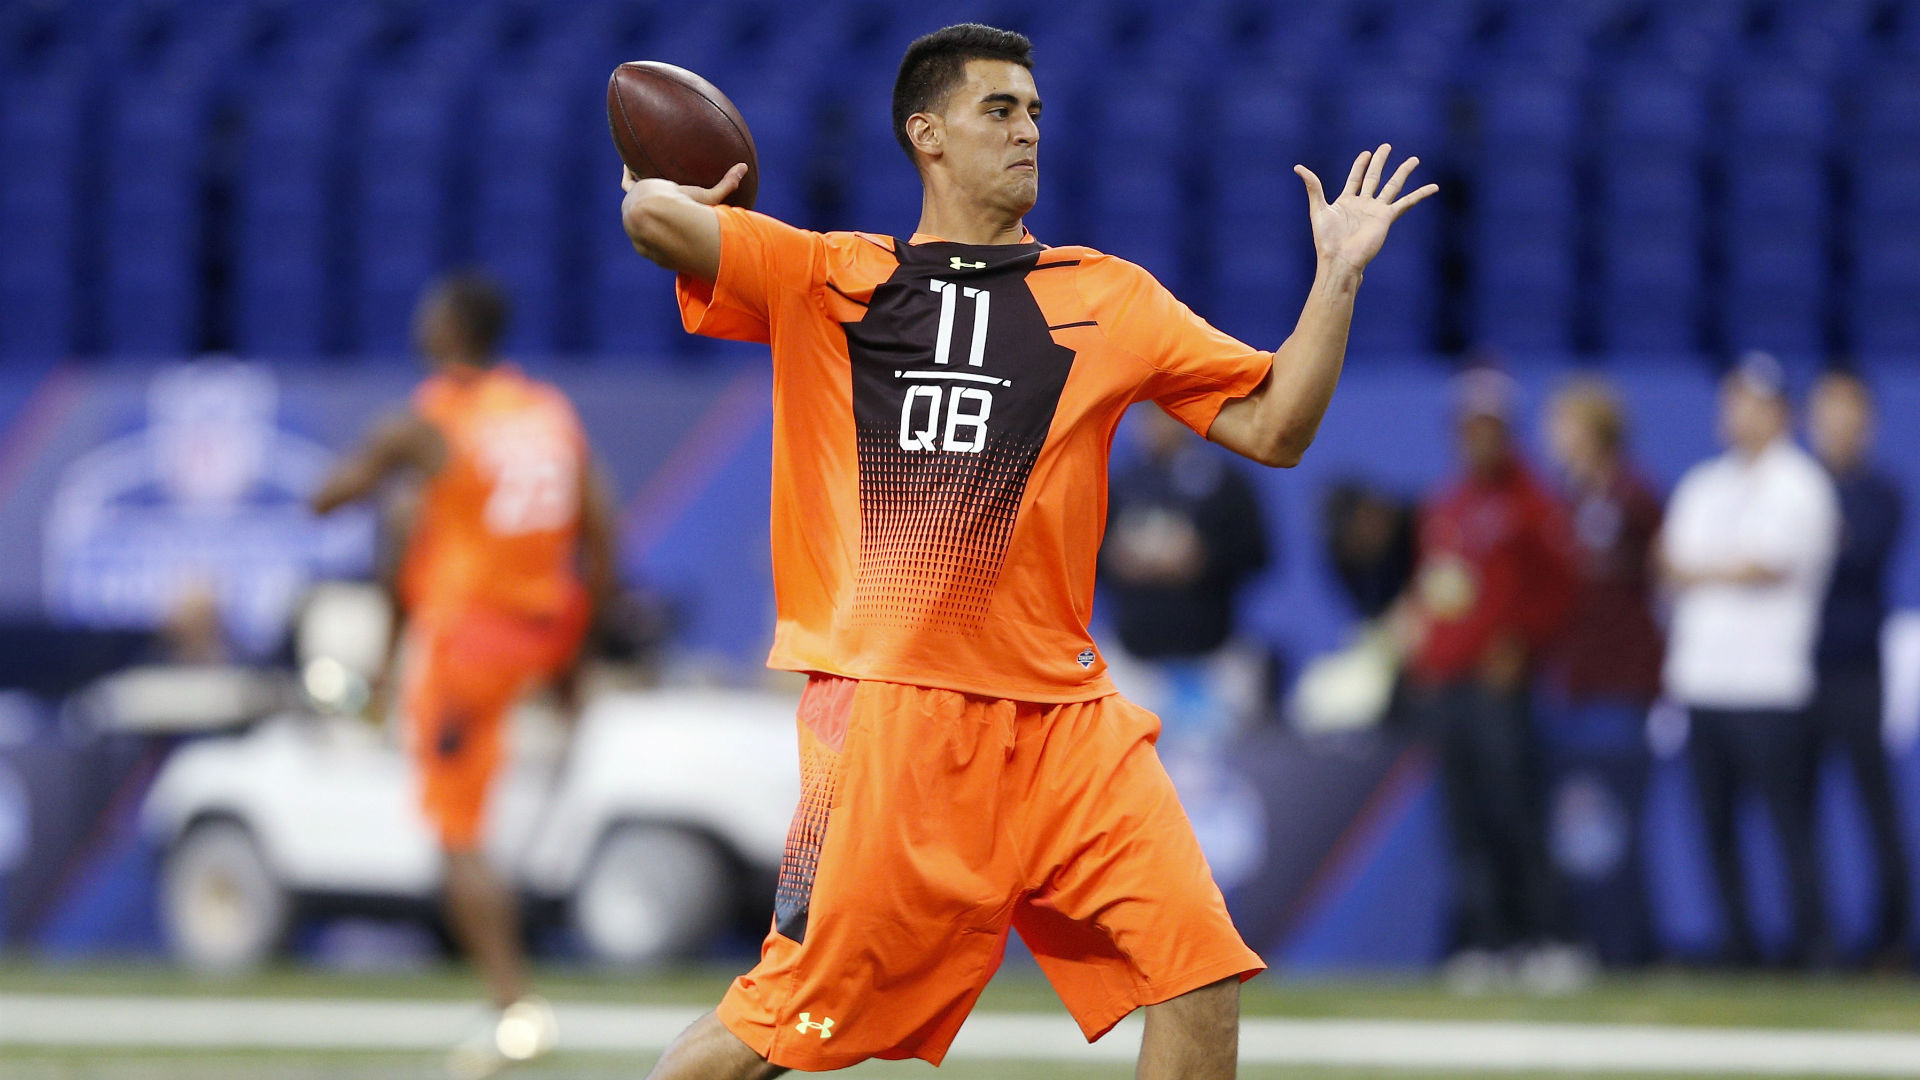 Report: Marcus Mariota will not attend NFL Draft